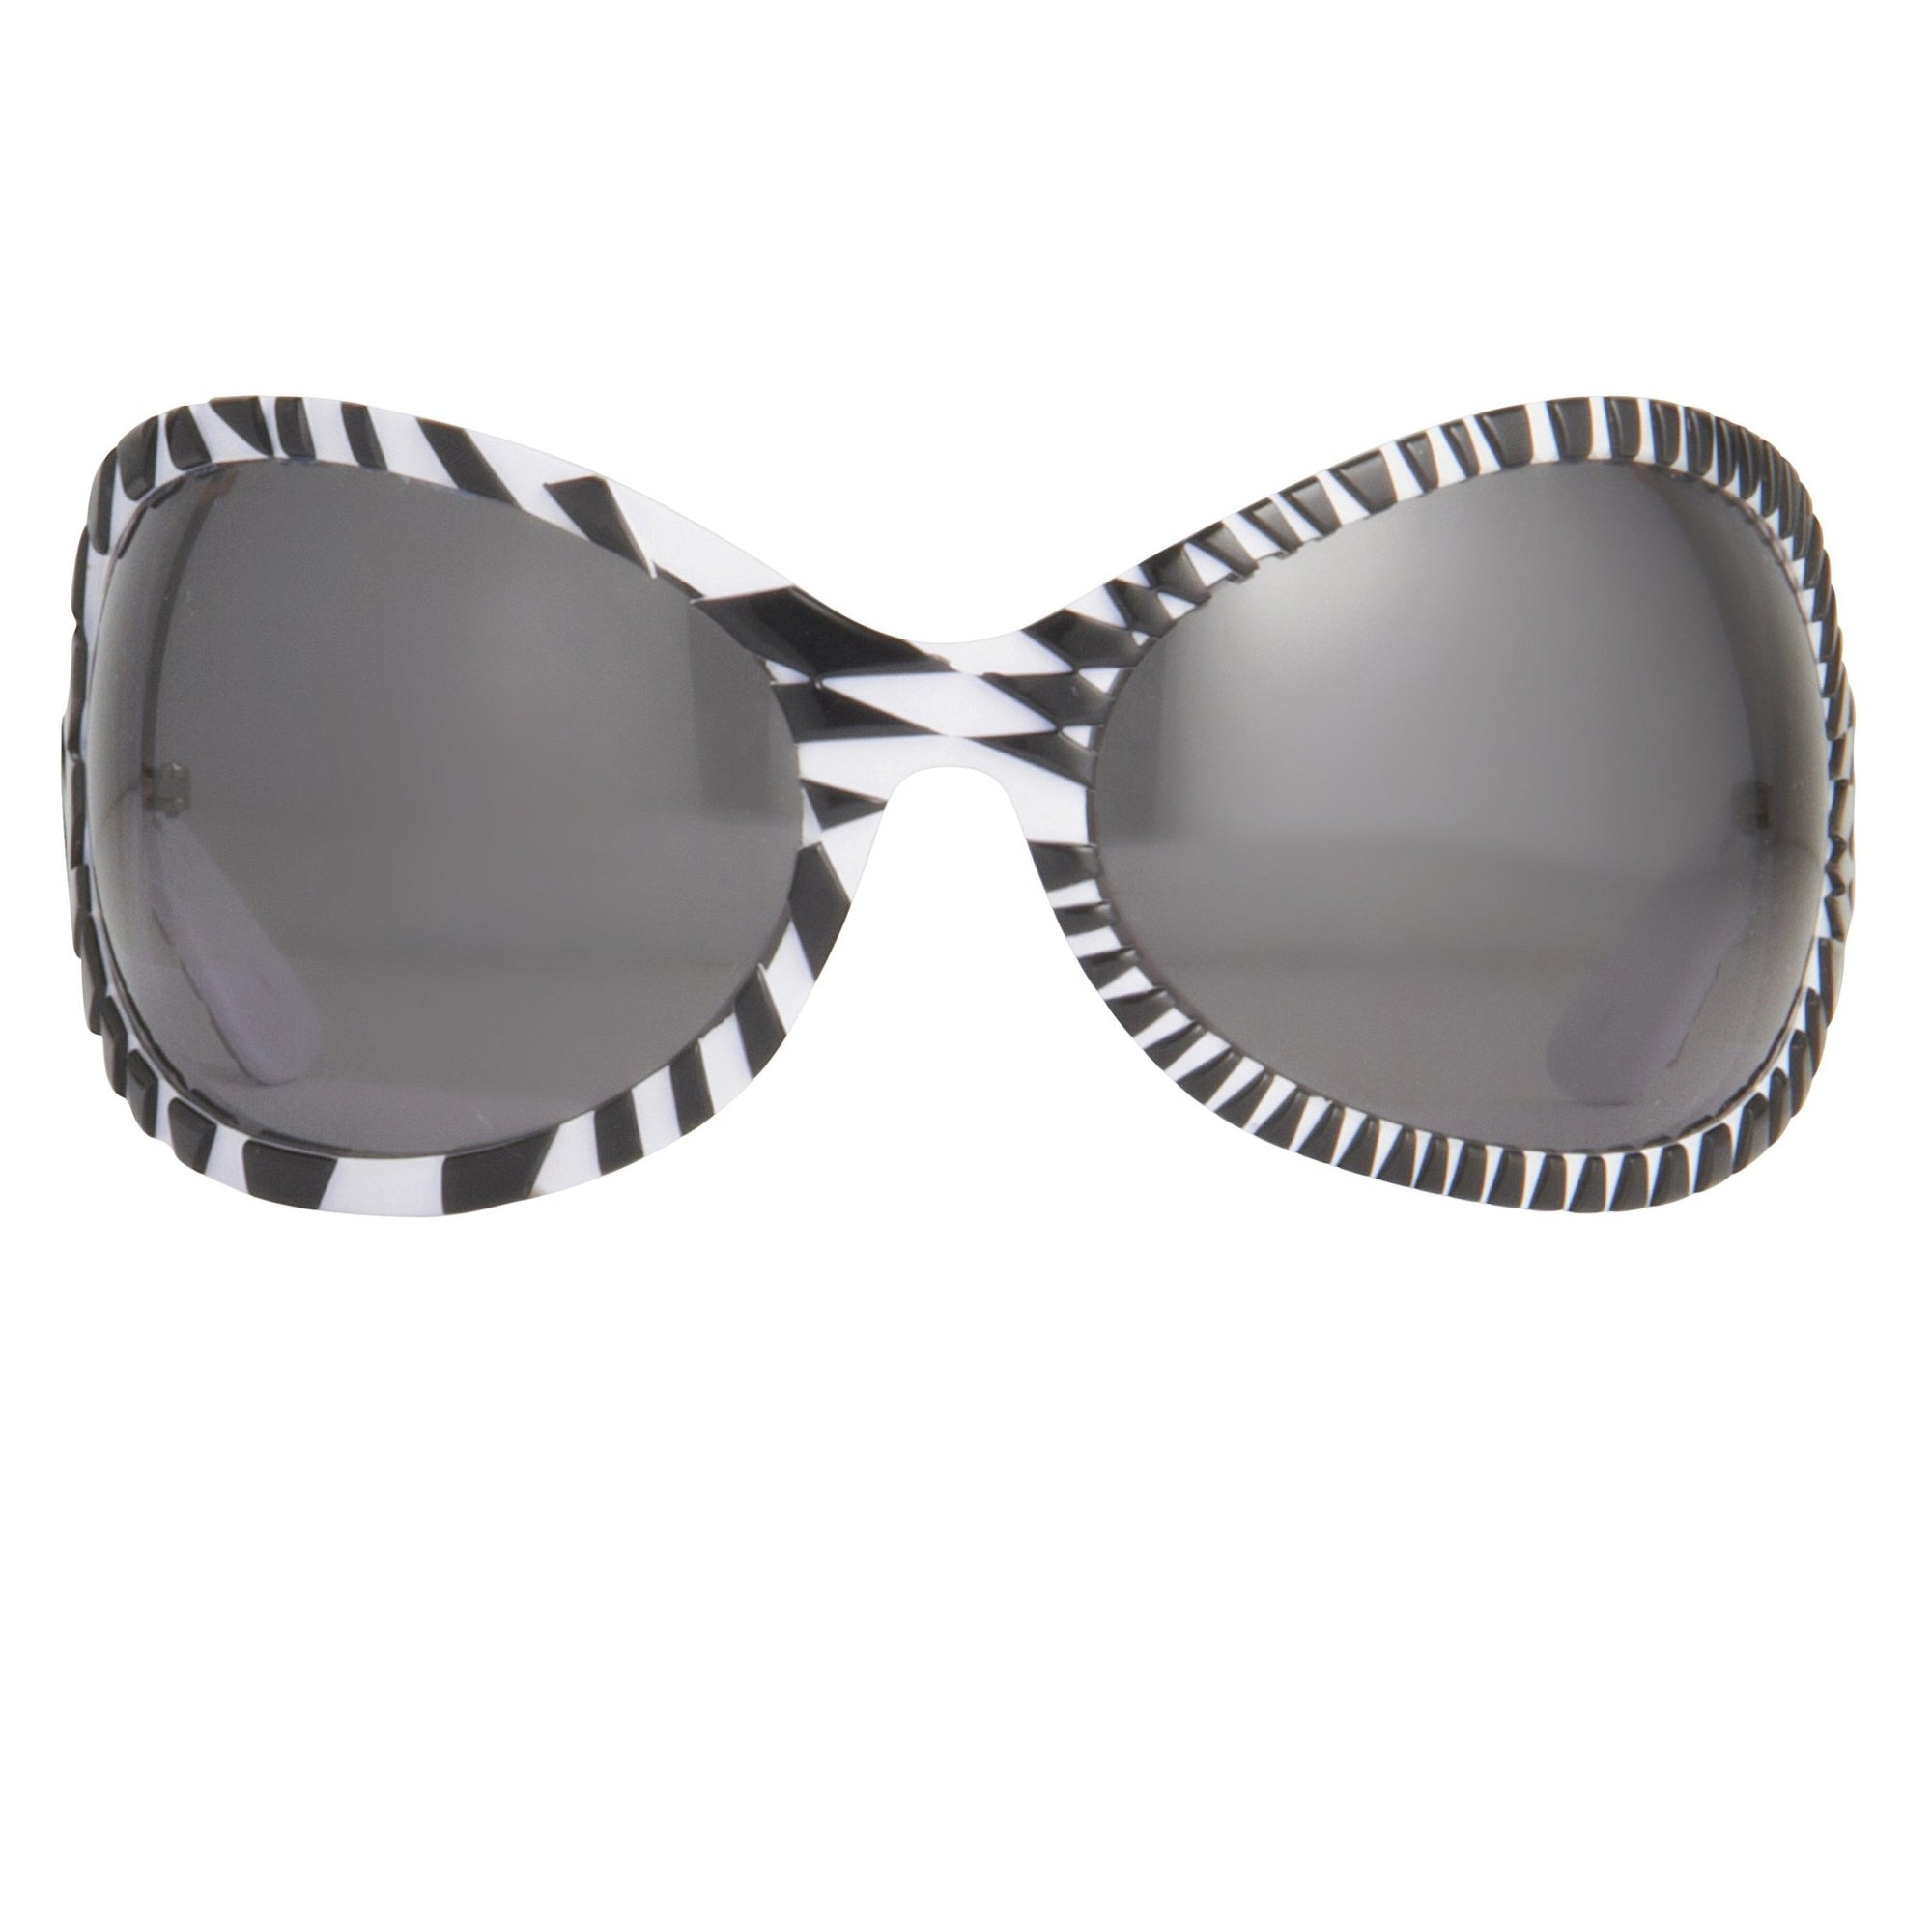 Jeremy Scott Sunglasses Wrap Around Black White Pattern With Grey Category 3 Lenses JSWRAPC1SUN - Watches & Crystals